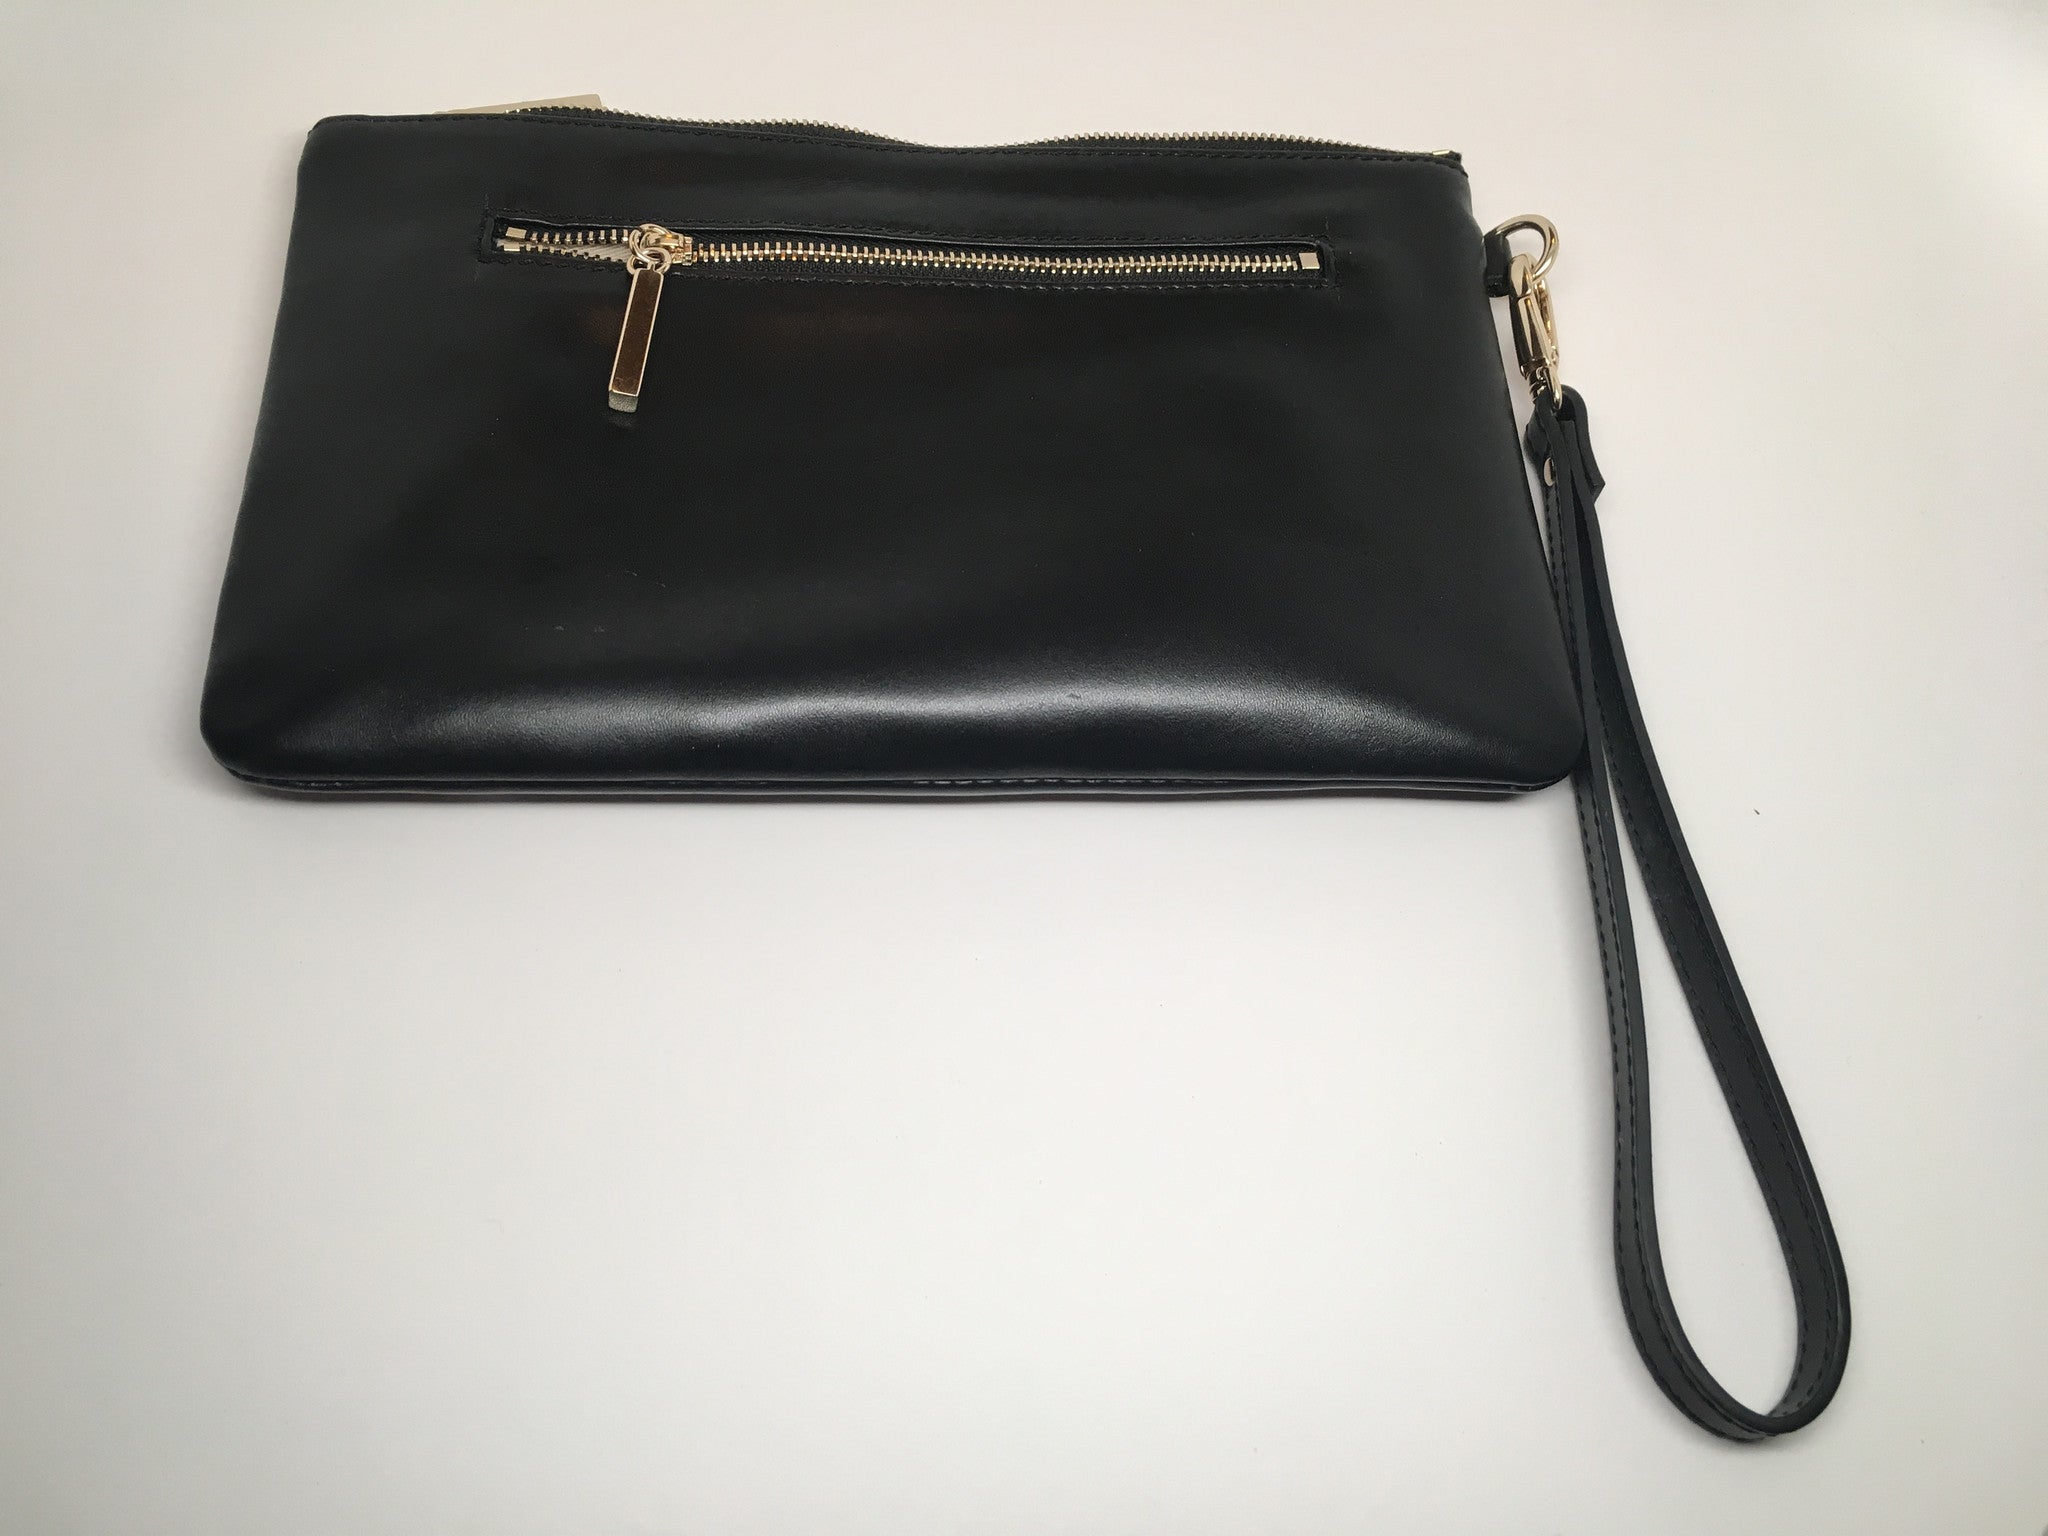 One of a kind isabella hearst leather clutch